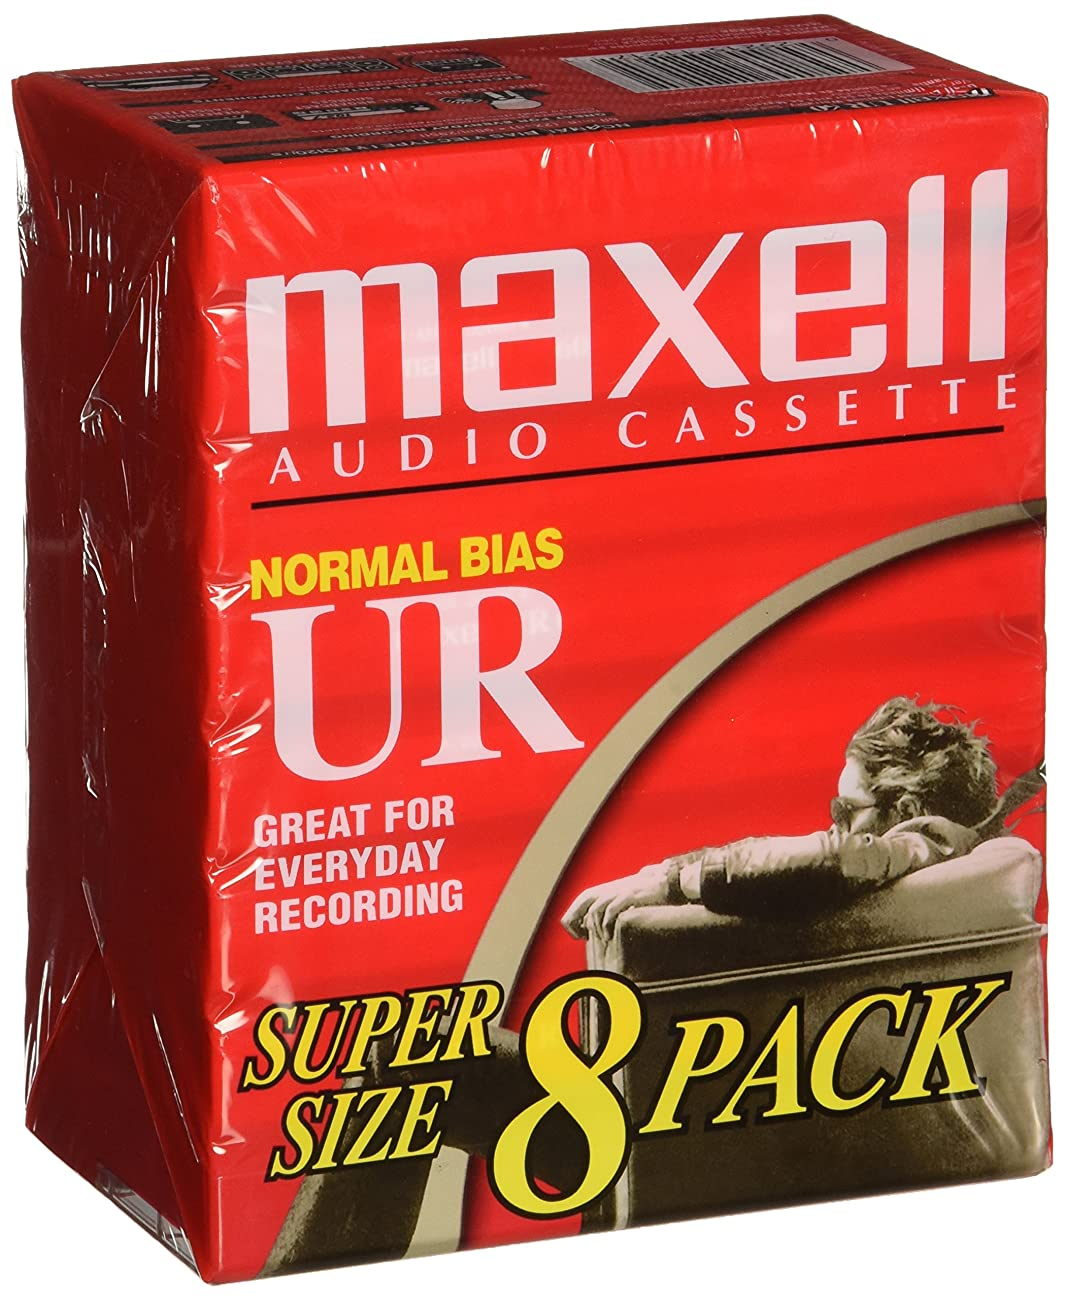 Maxell UR-60 Blank Audio Cassette Tape - 8 Pack (109085) 0